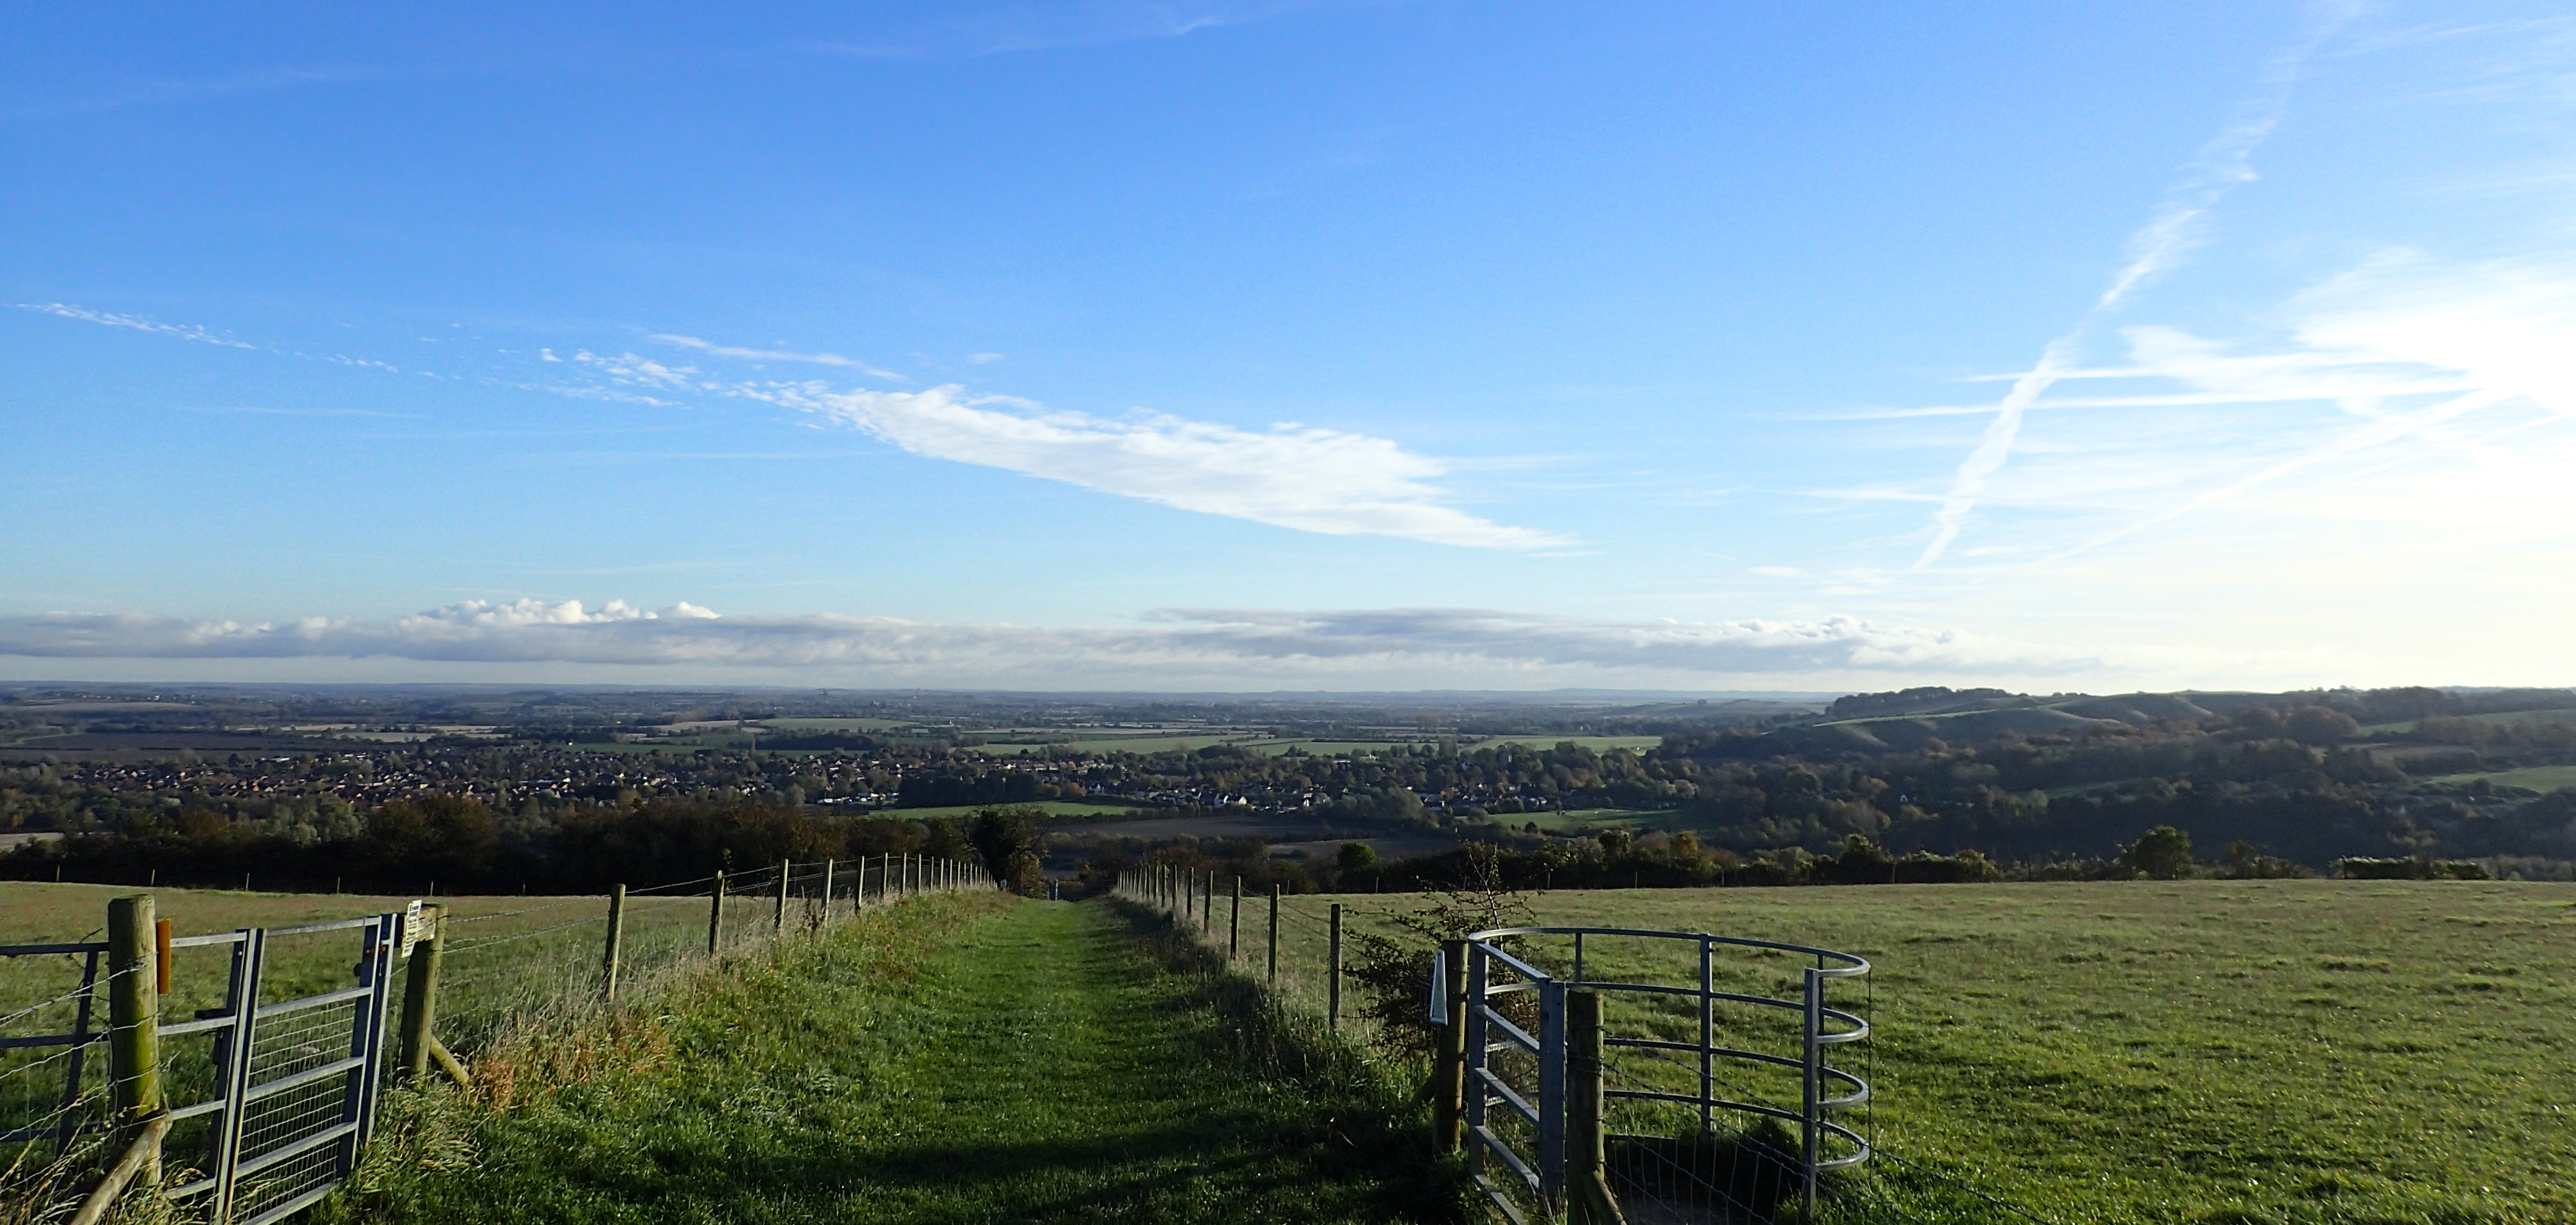 View from Sundon Hills Country Park, one of the highest points in Bedfordshire